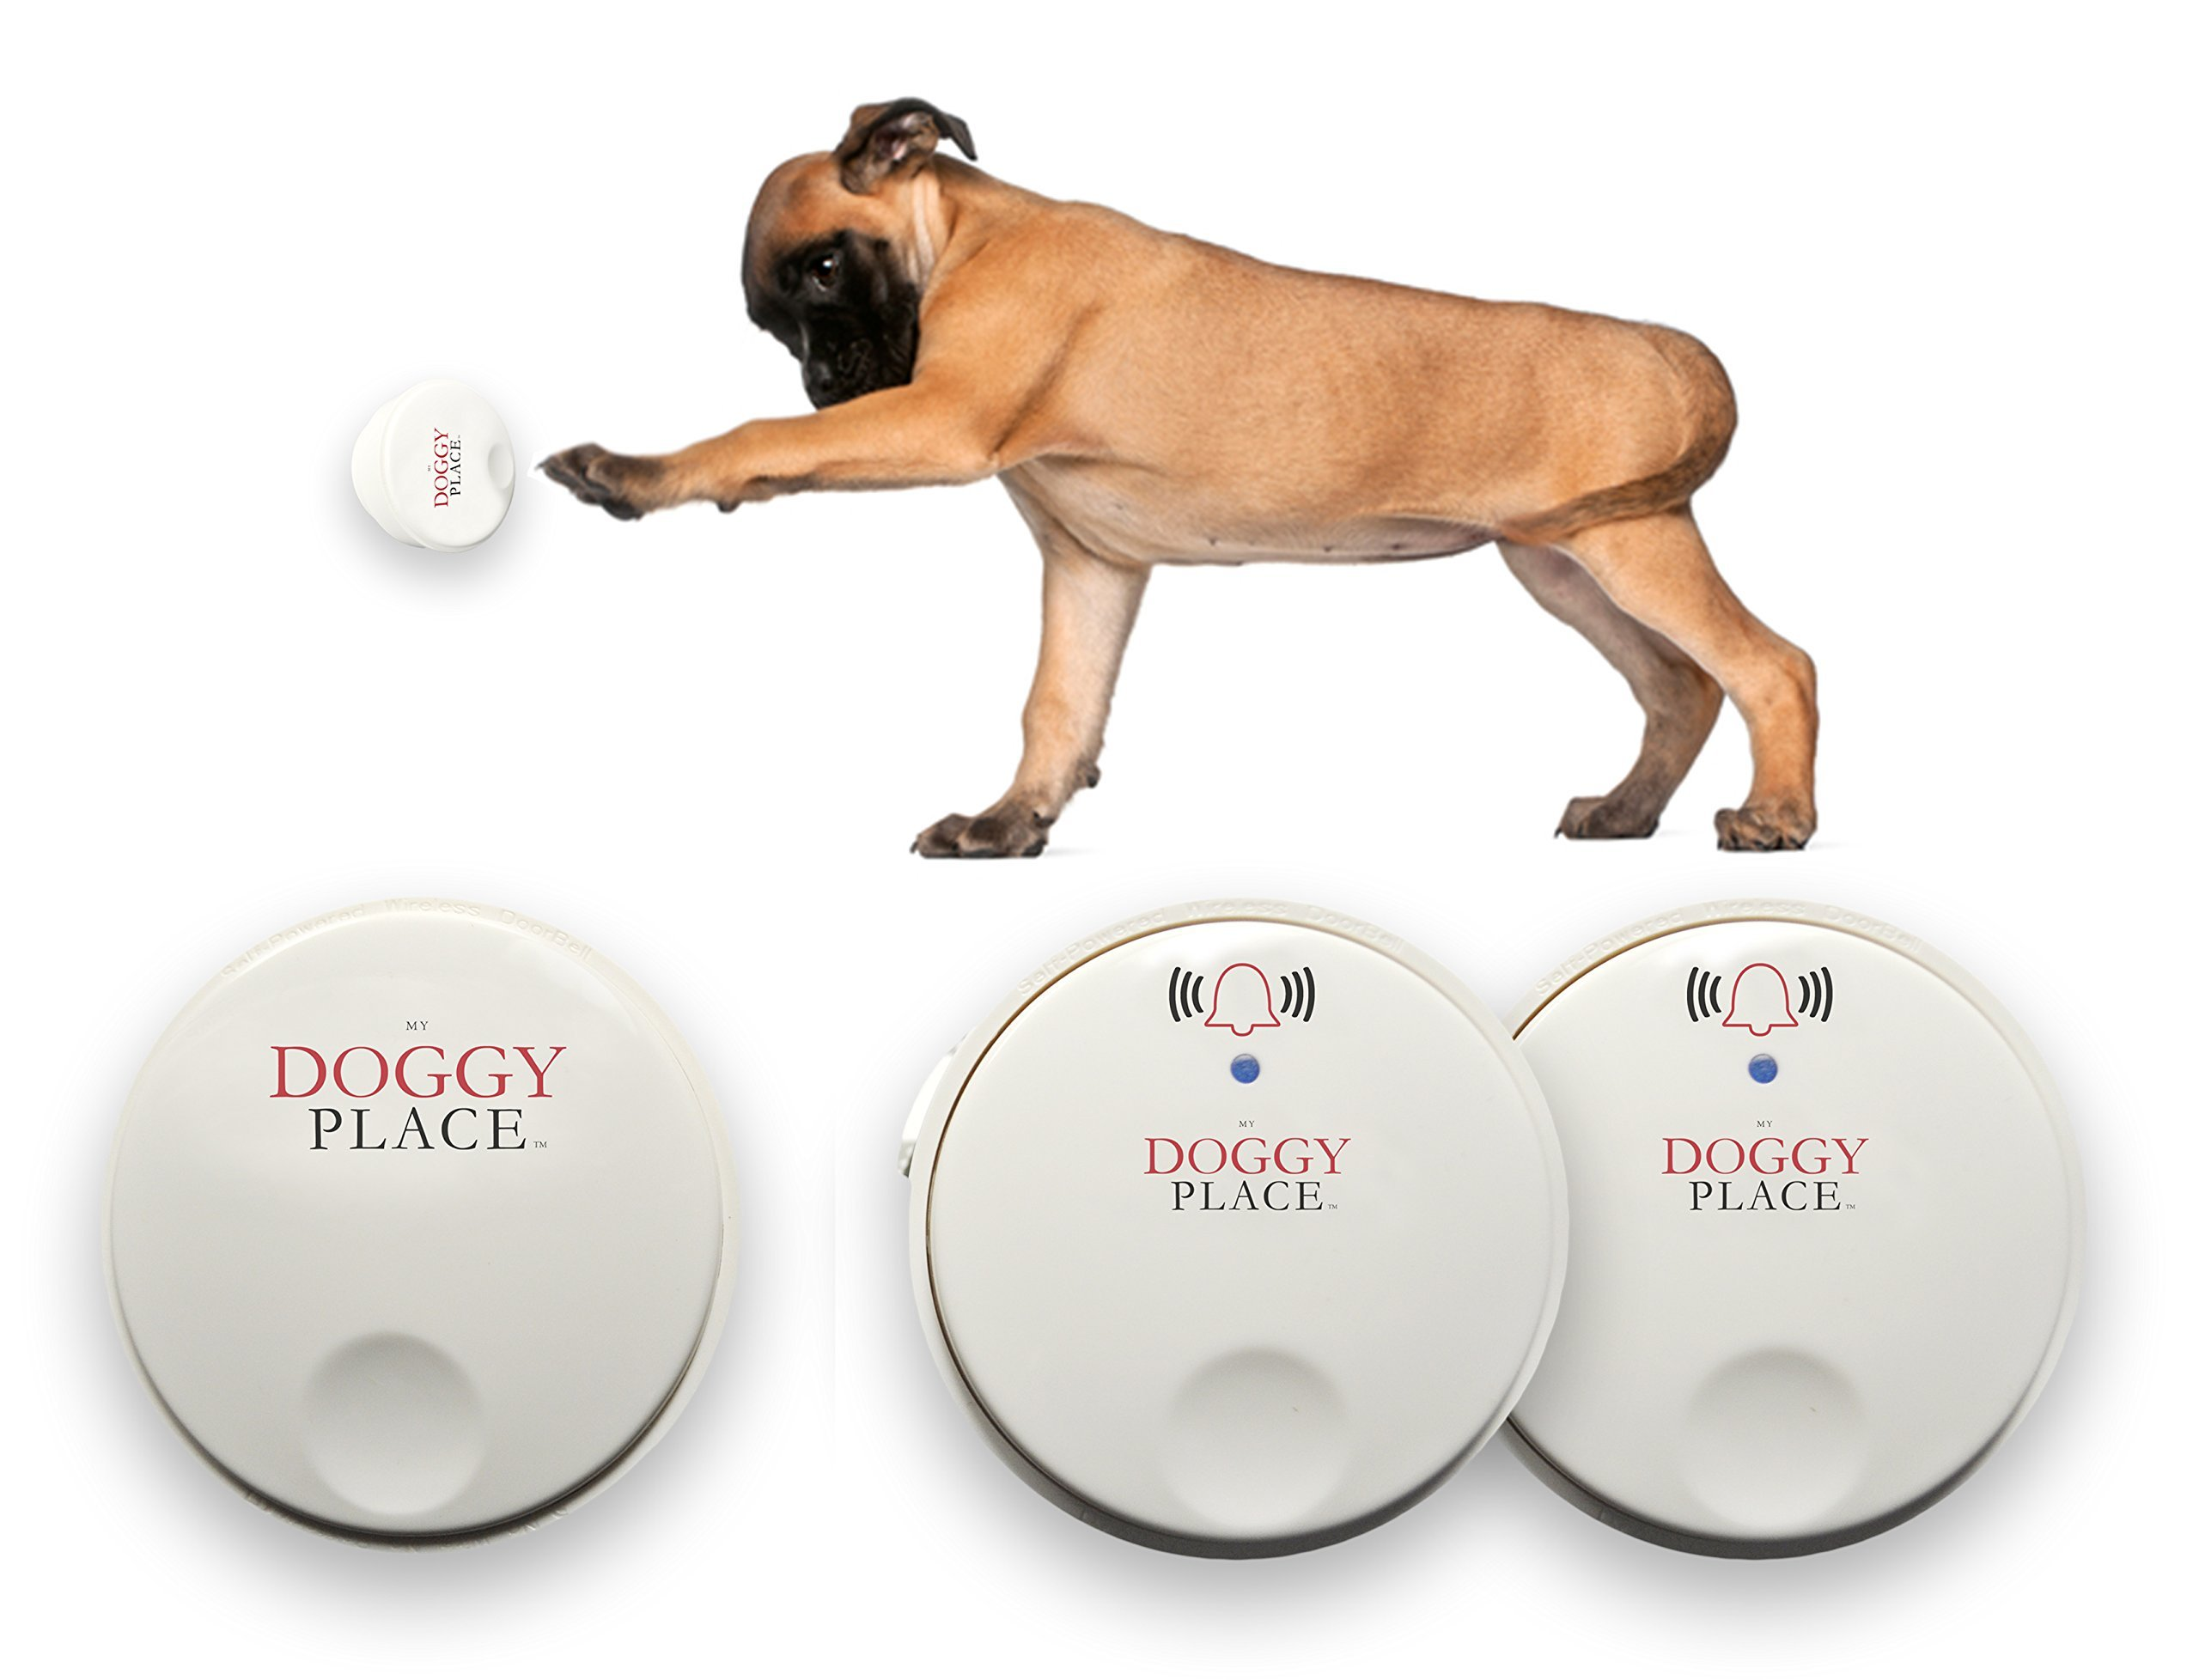 My Doggy Place - Dog Pet Children Toddler, Wireless Doorbell, No Batteries Required, Electronic Chime Bell, Potty Training, for Small, Medium, Large Dogs (Two Transmitters - One Receiver)